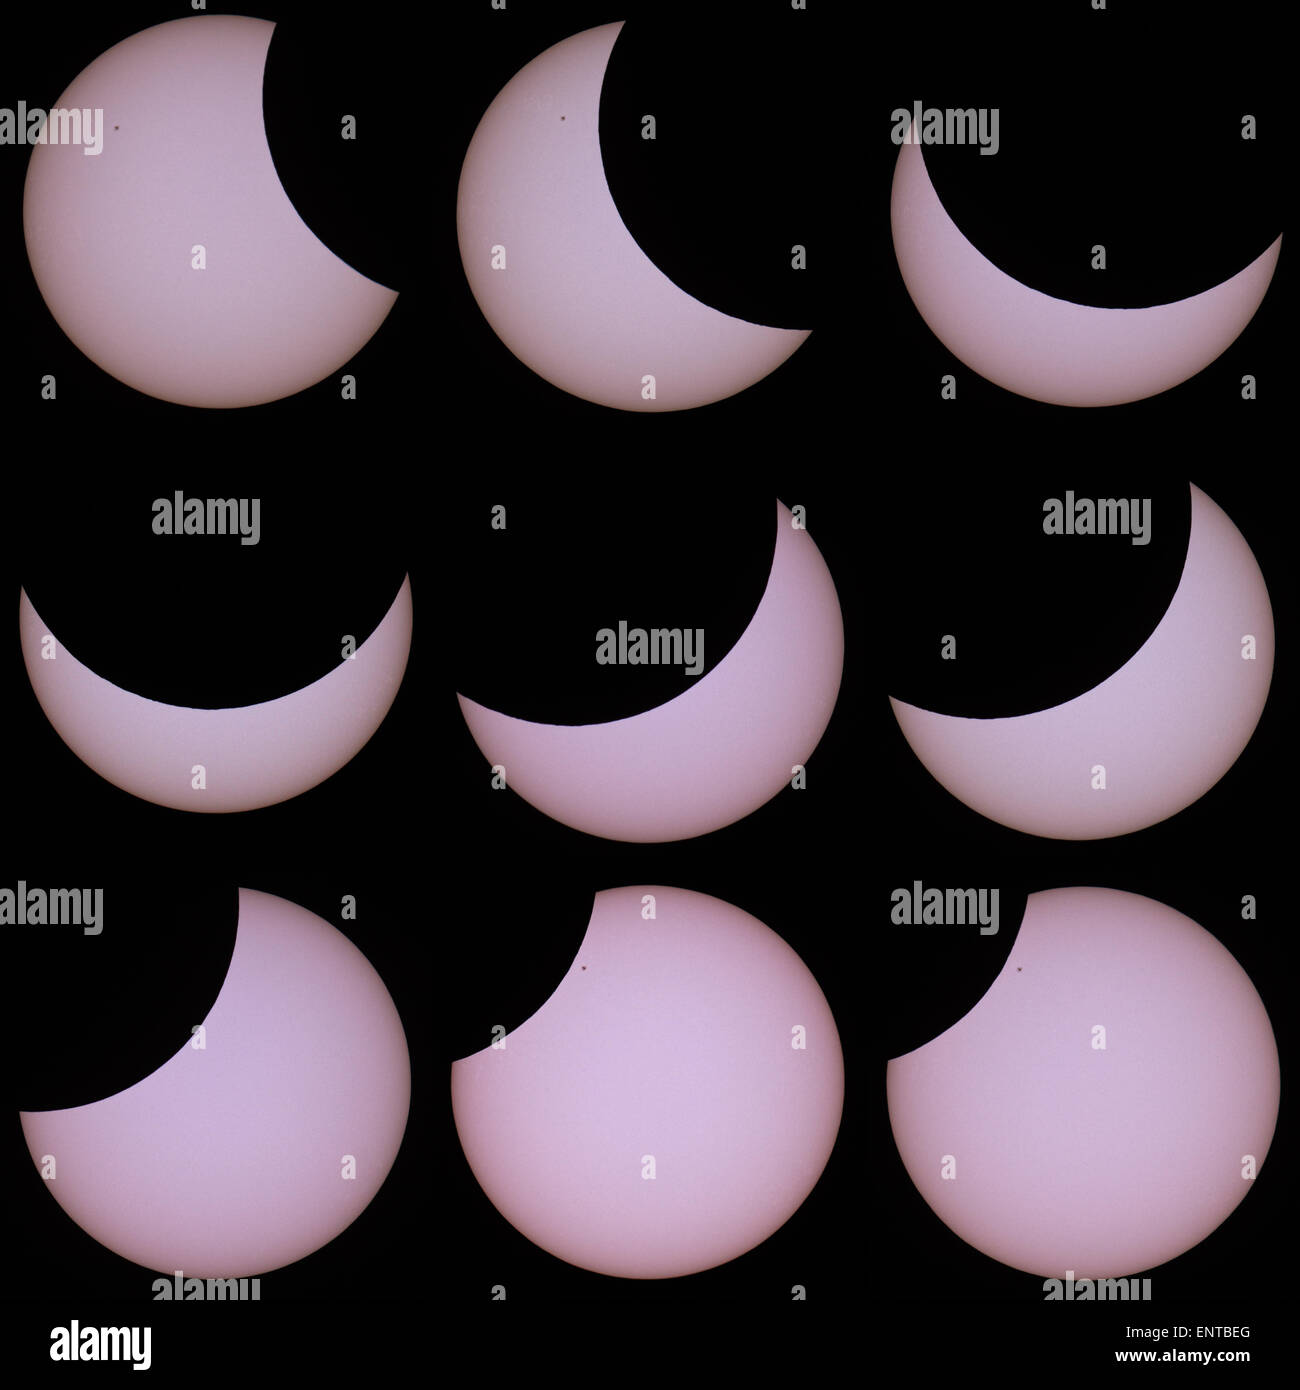 partial solar eclipse in Prague on March 20, 2015 - Stock Image